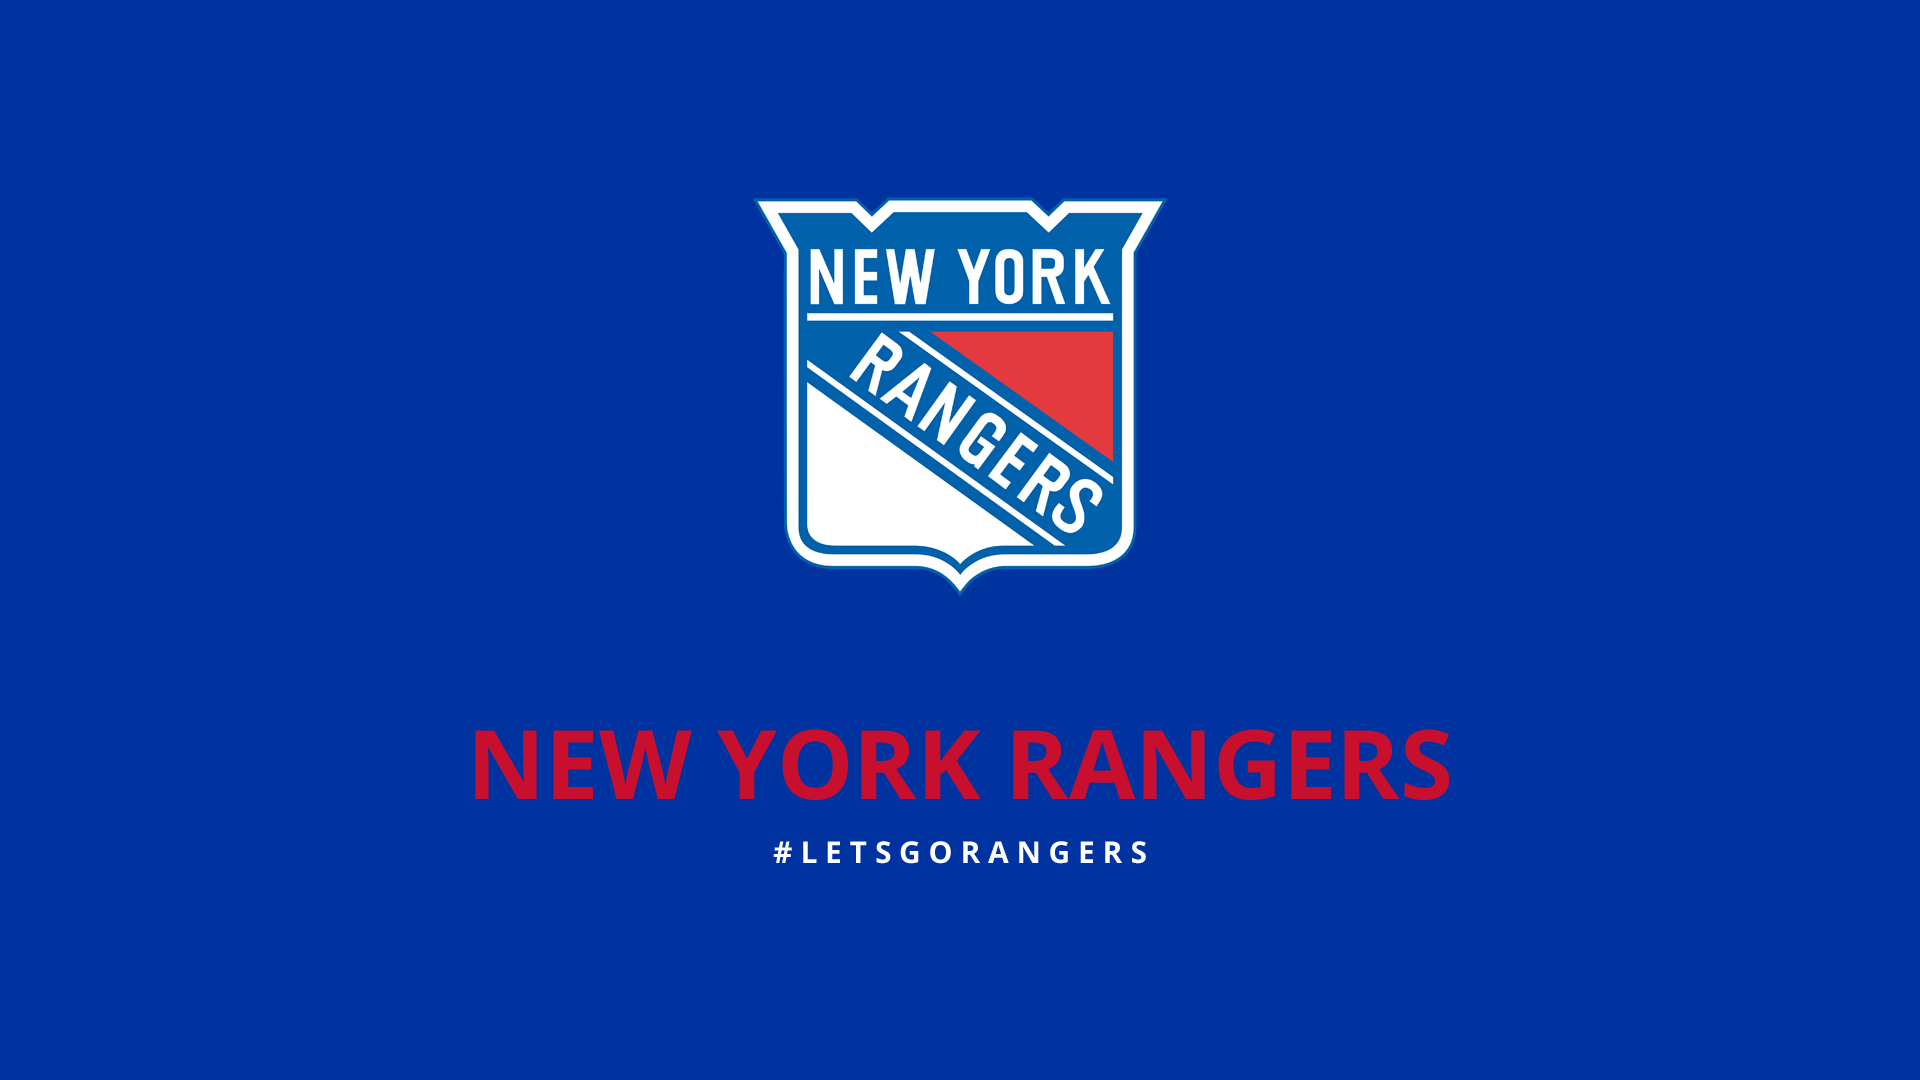 New York Rangers Backgrounds